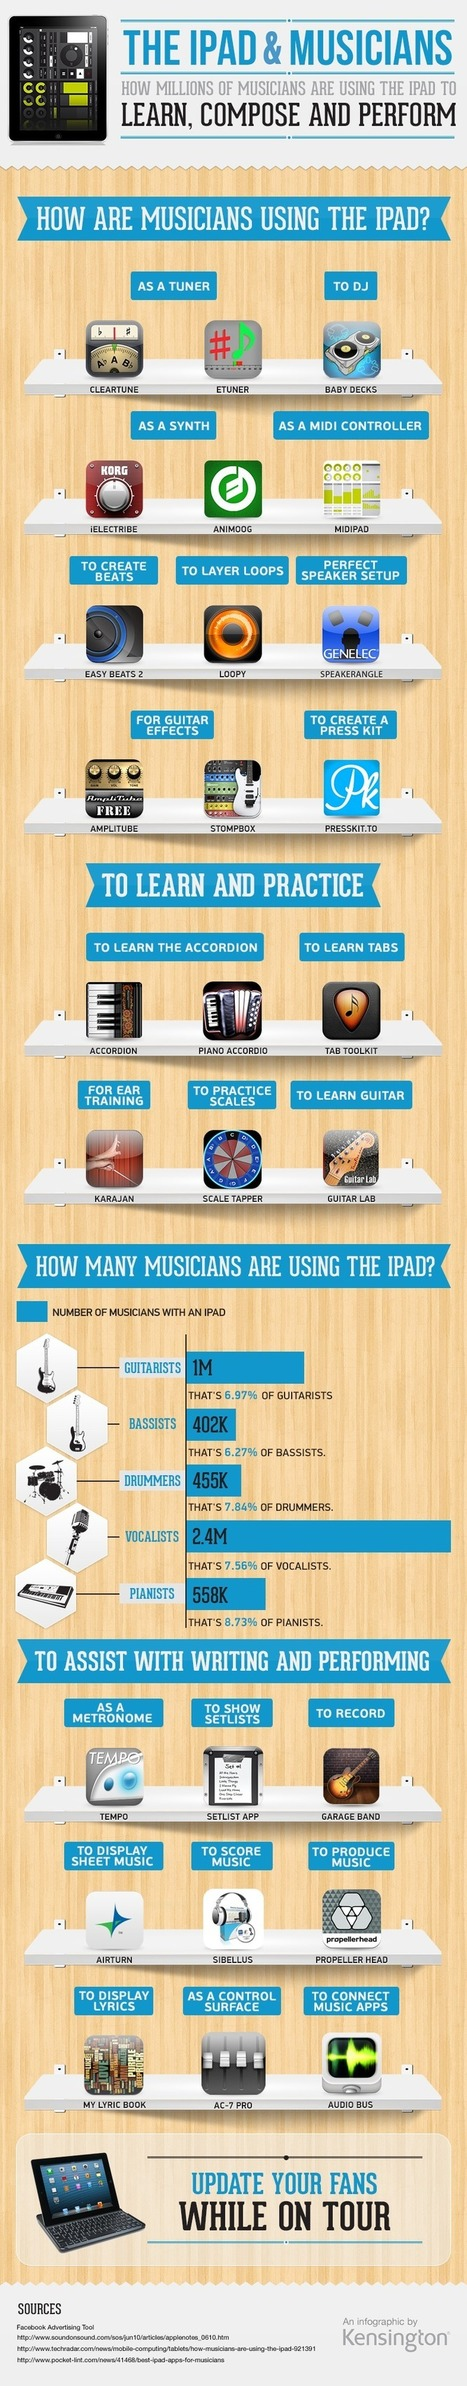 How Are Musicians Using the iPad? | Music Marketing | Scoop.it